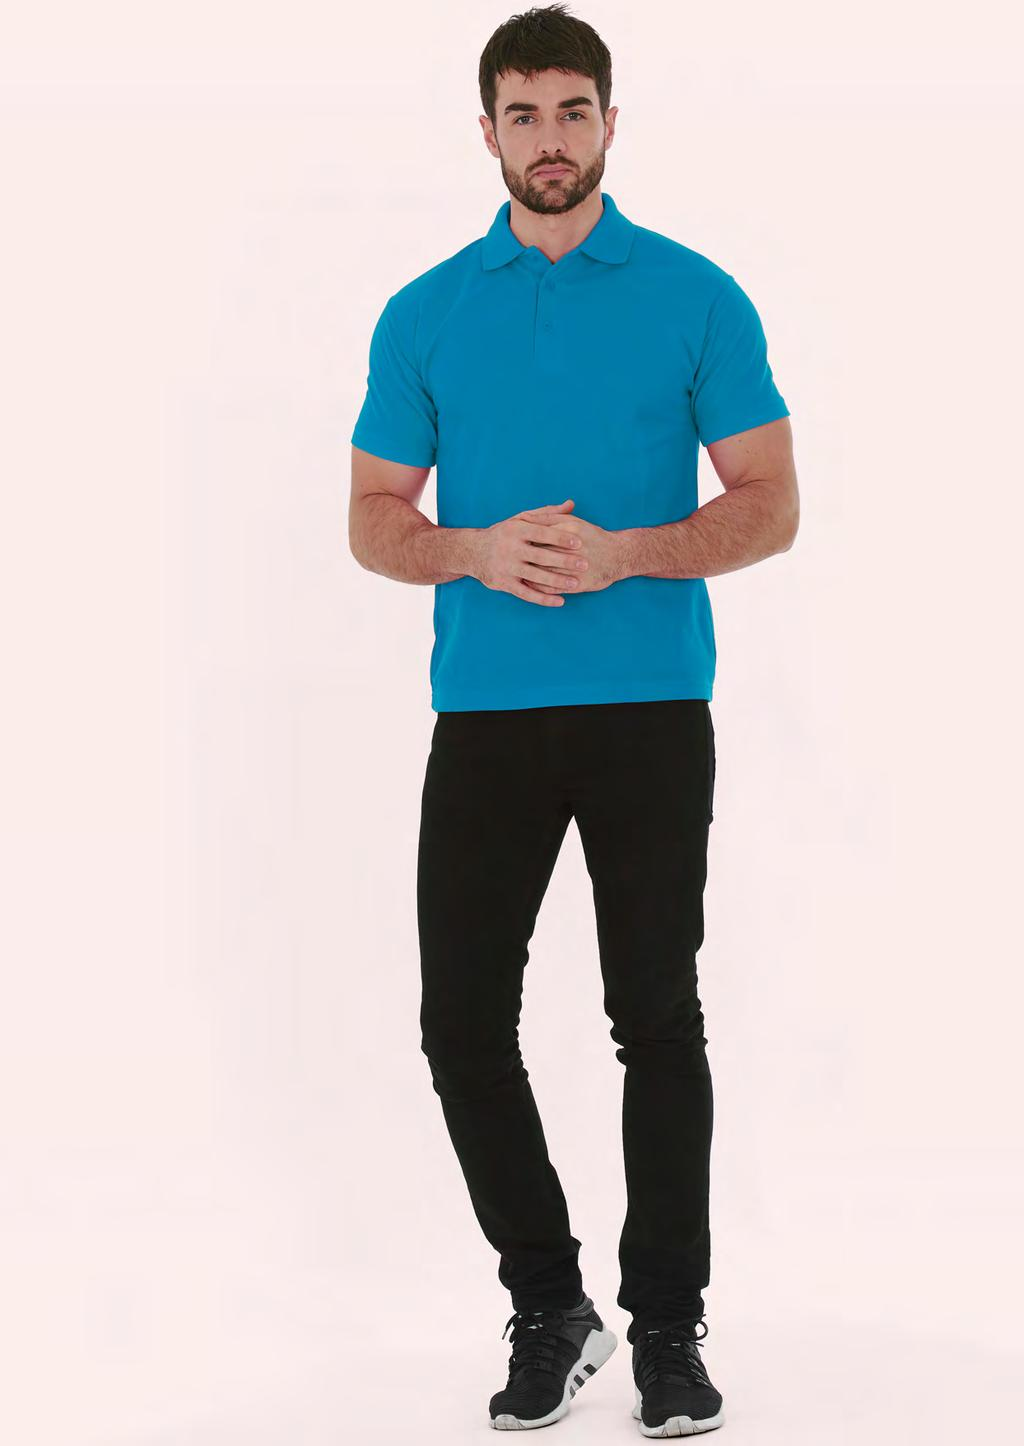 POLOSHIRTS UC114 MENS ULTRA POLOSHIRT NEW 180 40 60/10 100% Pre-Shrunk Ringspun Combed Cotton Reactive Dyed Knitted Collar and Cuff Taped Neck Twin Needle Stitching on Hem Washable at 40 Degrees 3